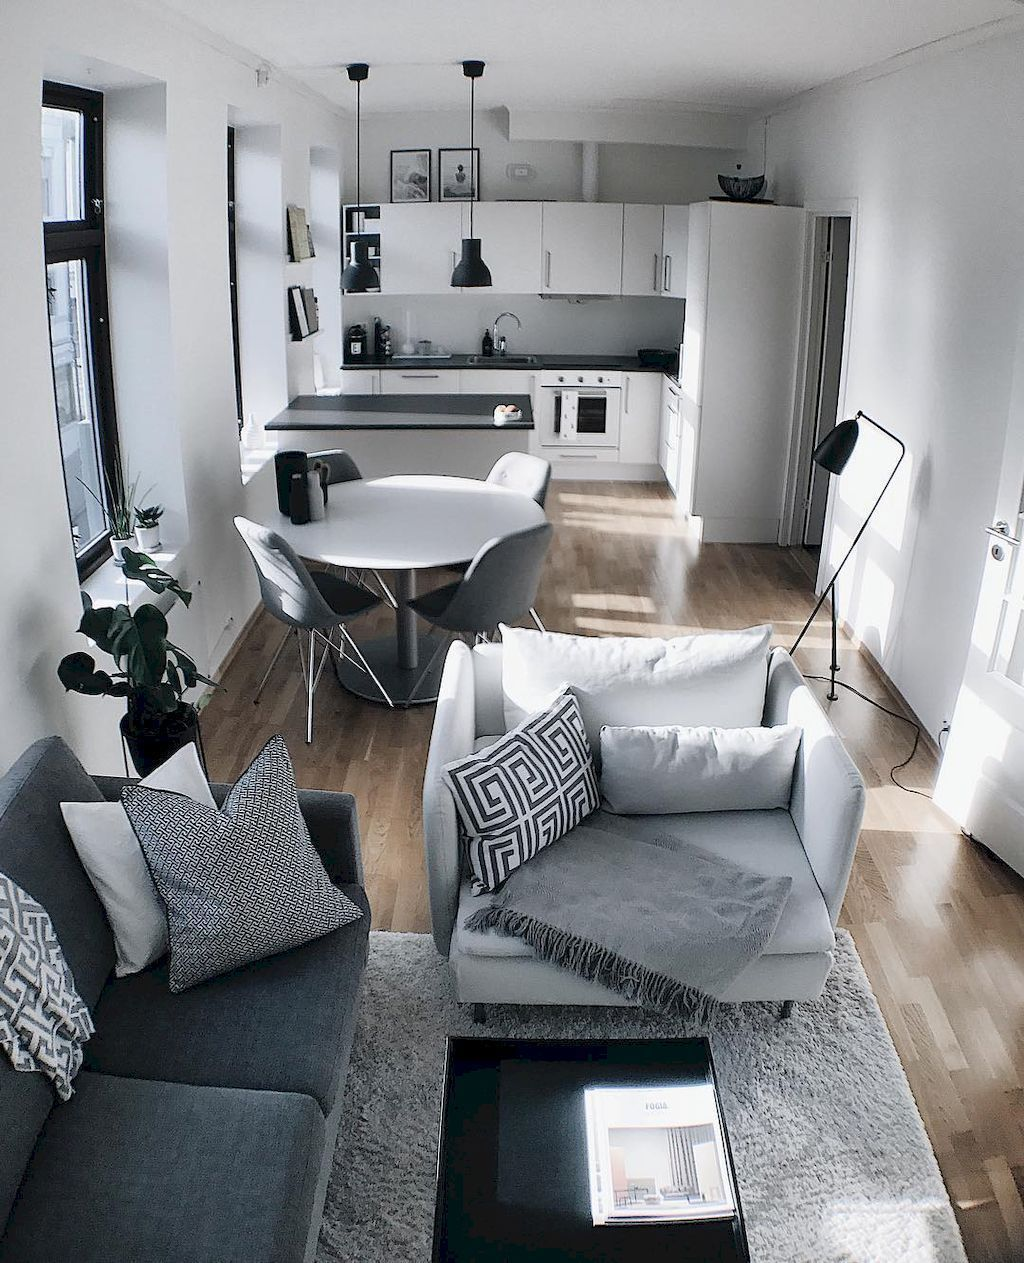 30 Awesome Apartment Decorating Ideas On A Budget Popy Home Apartment Decor Inspiration Small Apartment Living Room Affordable Apartment Decor